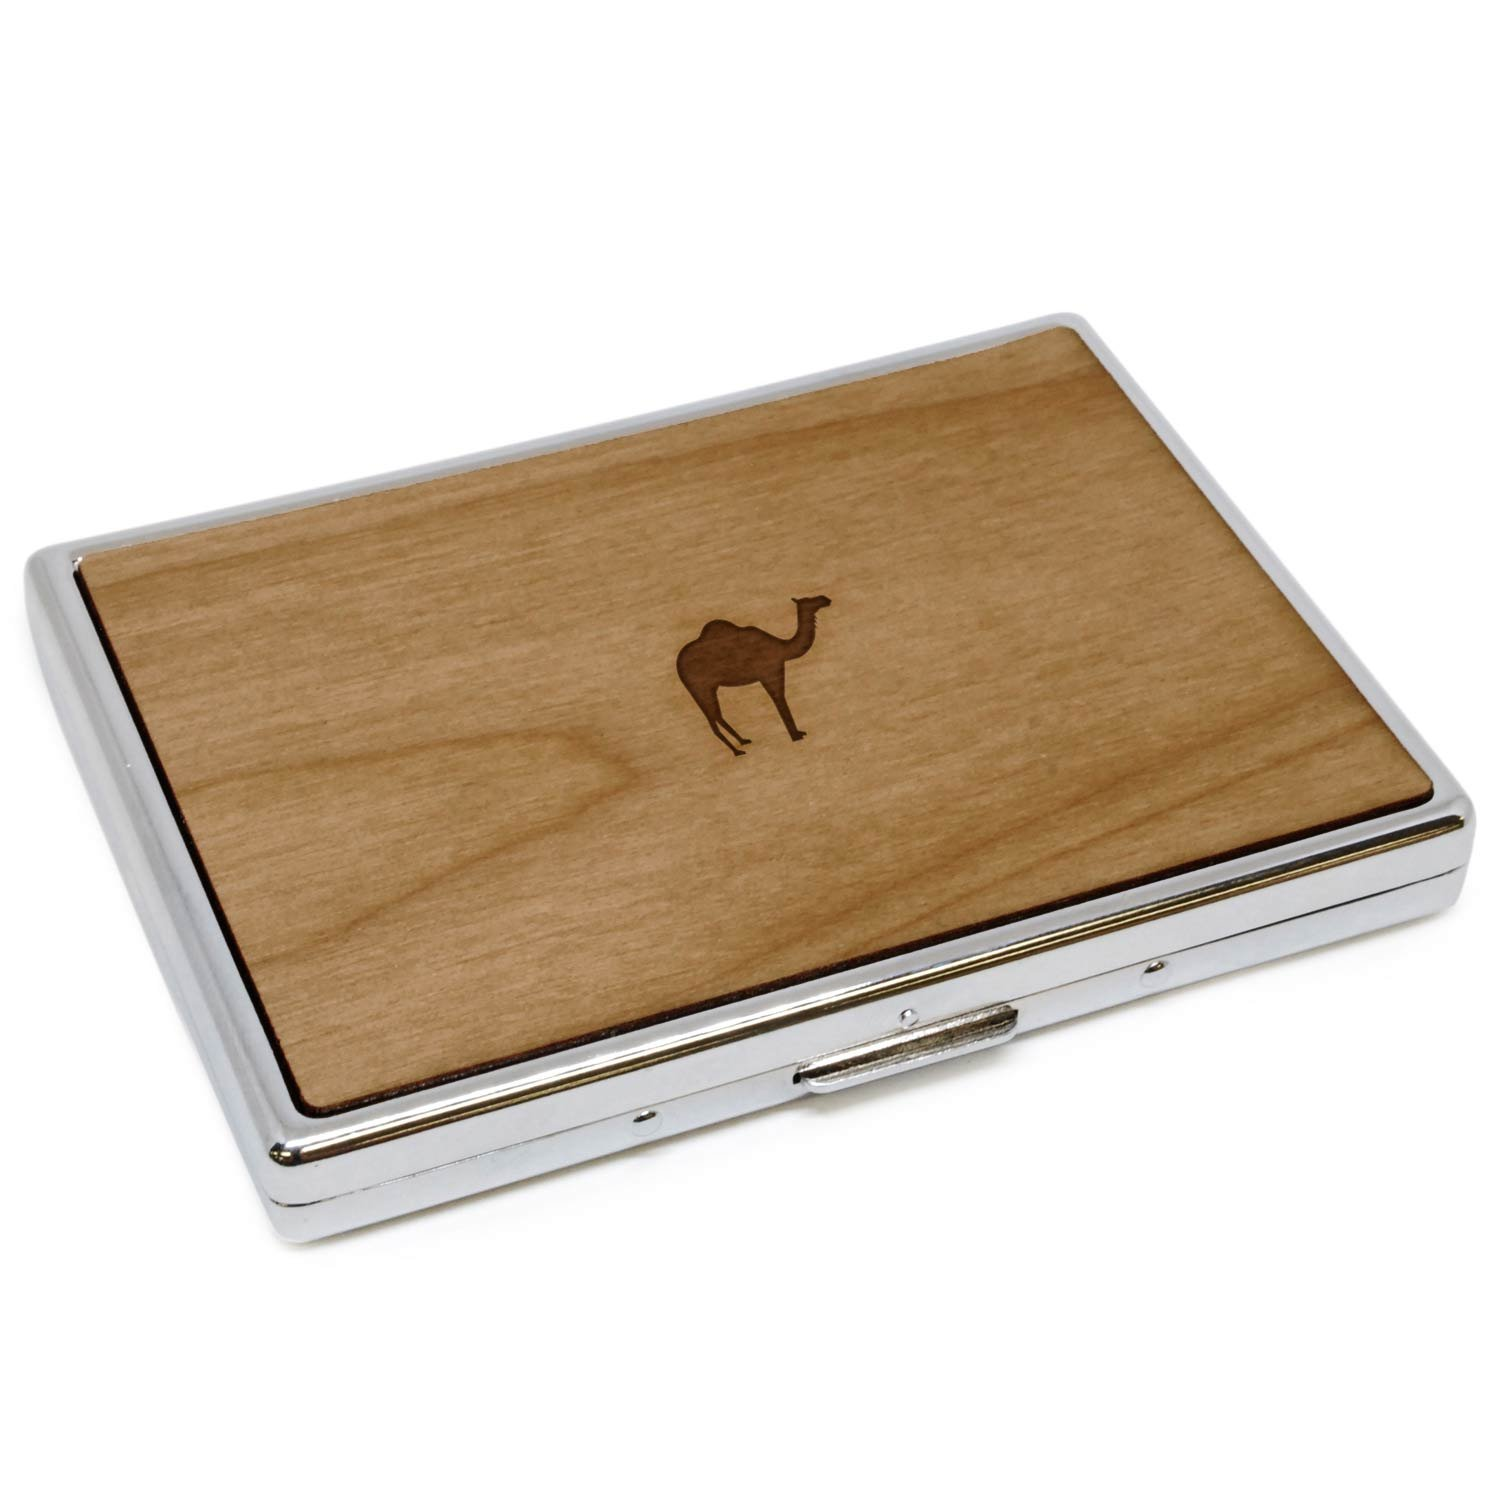 WOODEN ACCESSORIES COMPANY Wooden Cigarette Cases With Laser Engraved Camel Design - Stainless Steel Cigarette Case With Wooden Panel - Perfect Fit For Regular And King Size Cigarettes